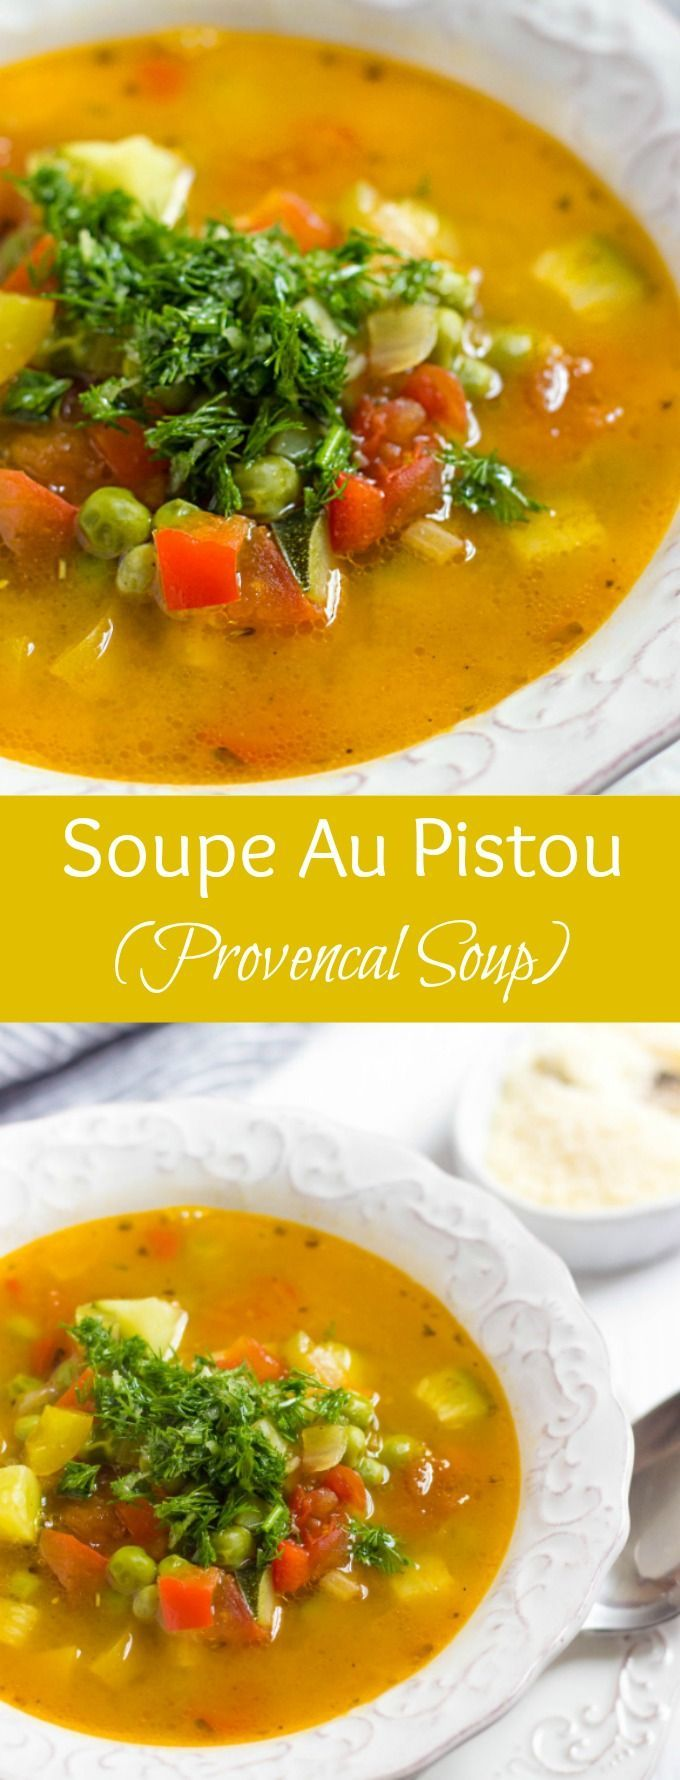 Au Pistou (Provencal Soup) This classic French vegetable soup is BURSTING with flavor and so easy to make. Soupe Au Pistou is healthy and delicious soup you'll love.This classic French vegetable soup is BURSTING with flavor and so easy to make. Soupe Au Pistou is healthy and delicious soup you'll love.